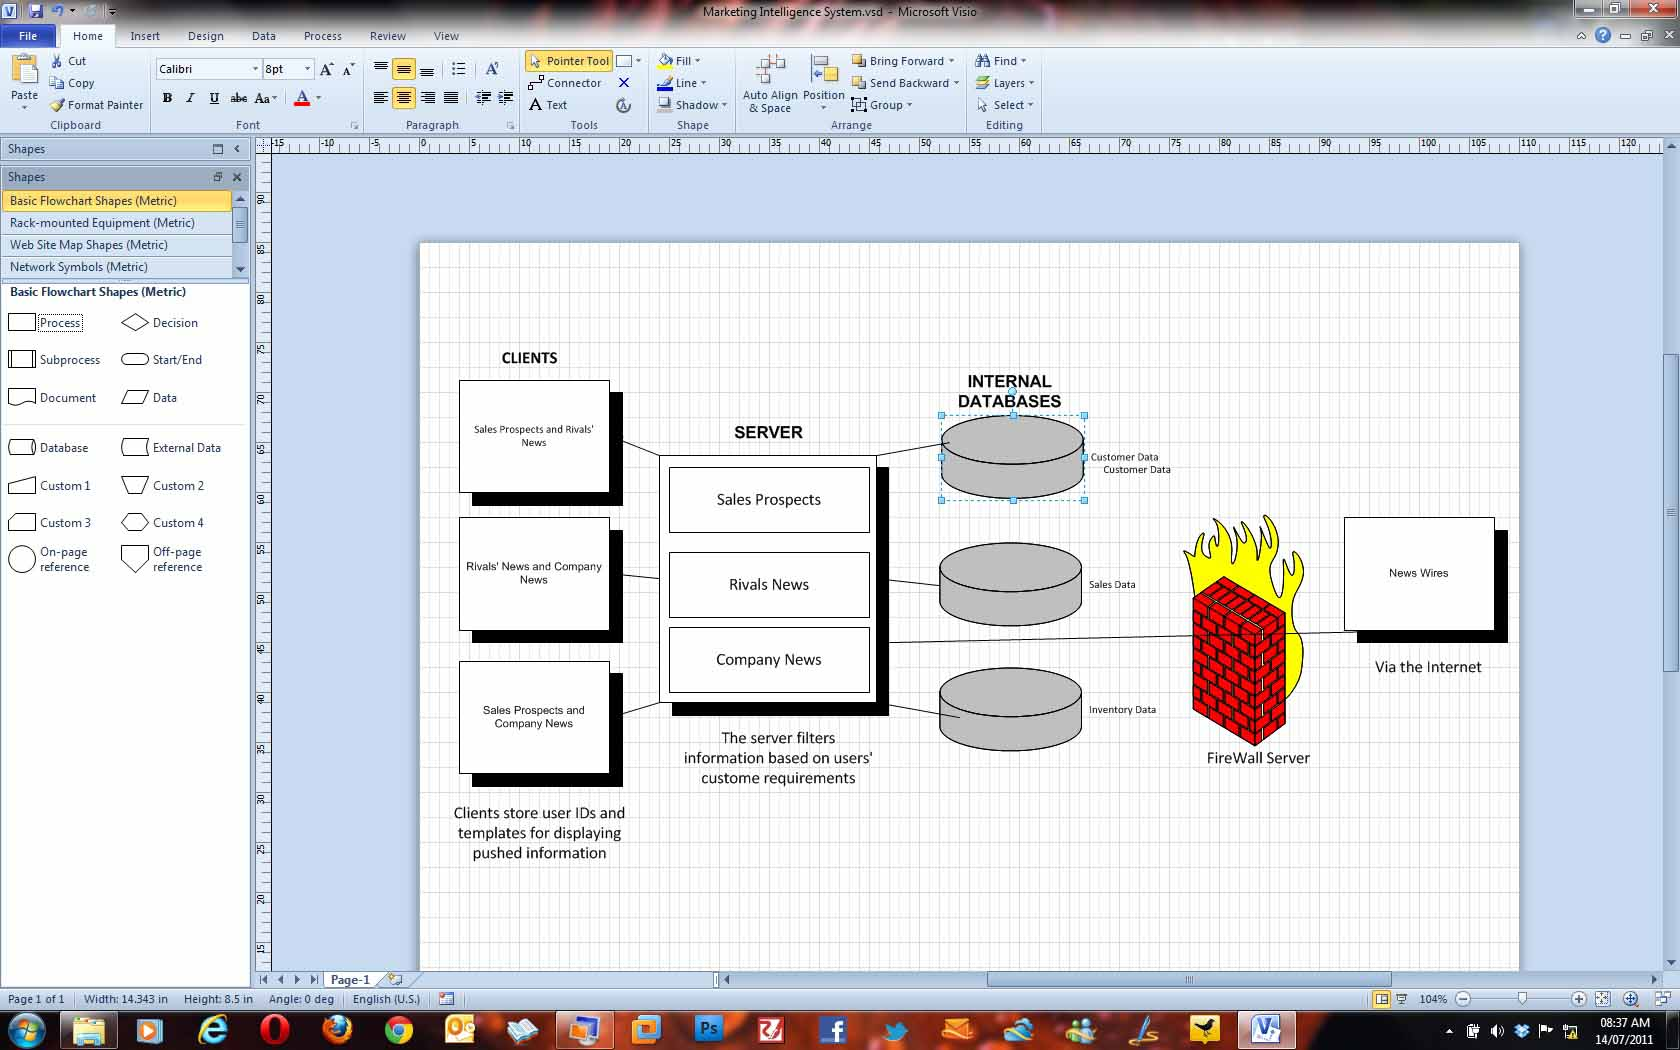 2010 visio er diagram wiring for electrical outlets activewin com microsoft premium review